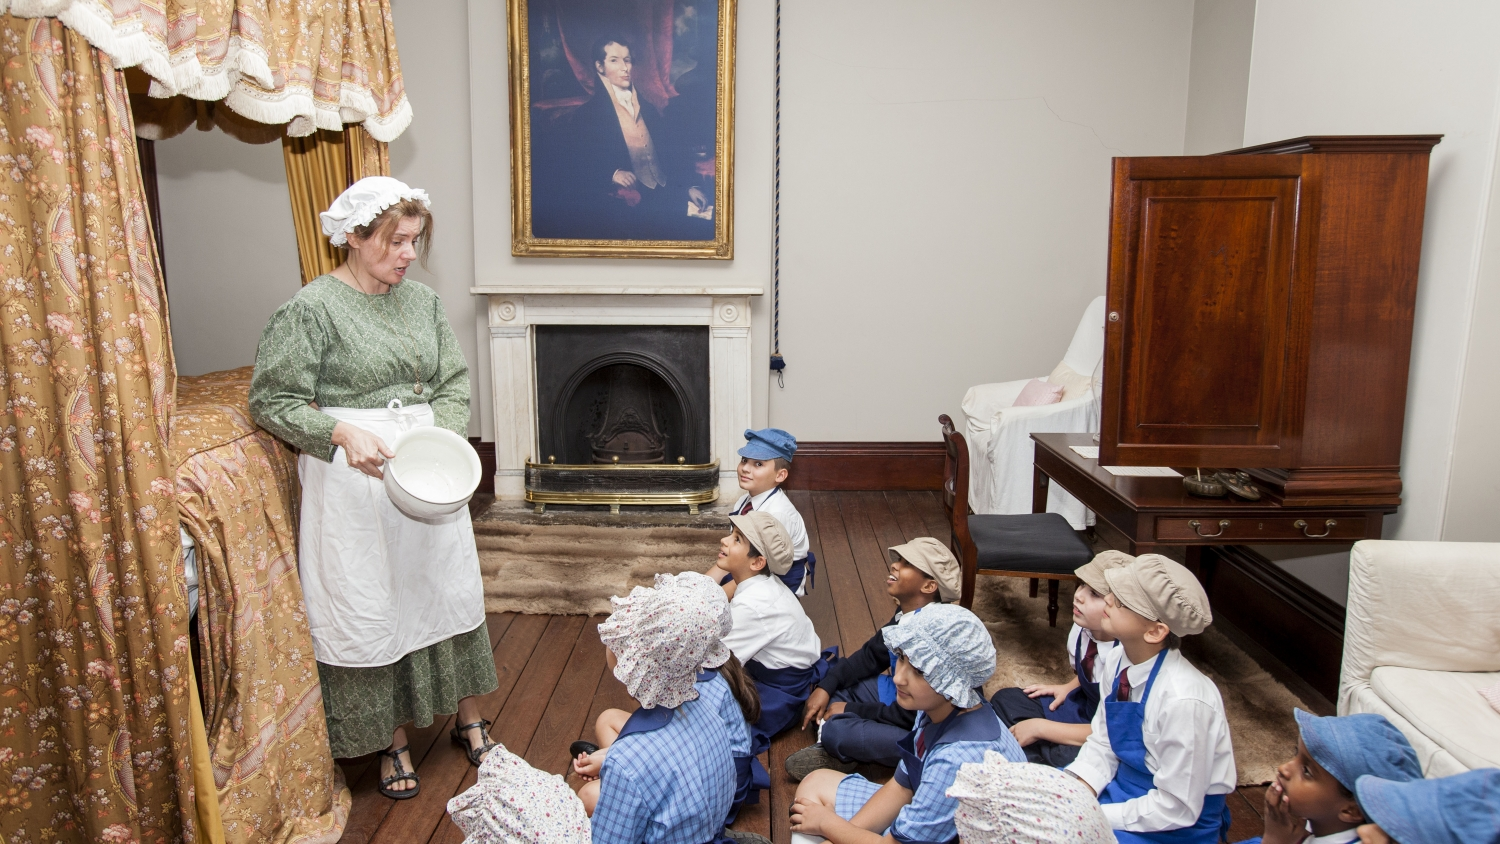 group of young student wearing costumes listening to female teacher standing in colonial period bedroom with large bed, fireplace, painting and wallaby skin rugs in the room.